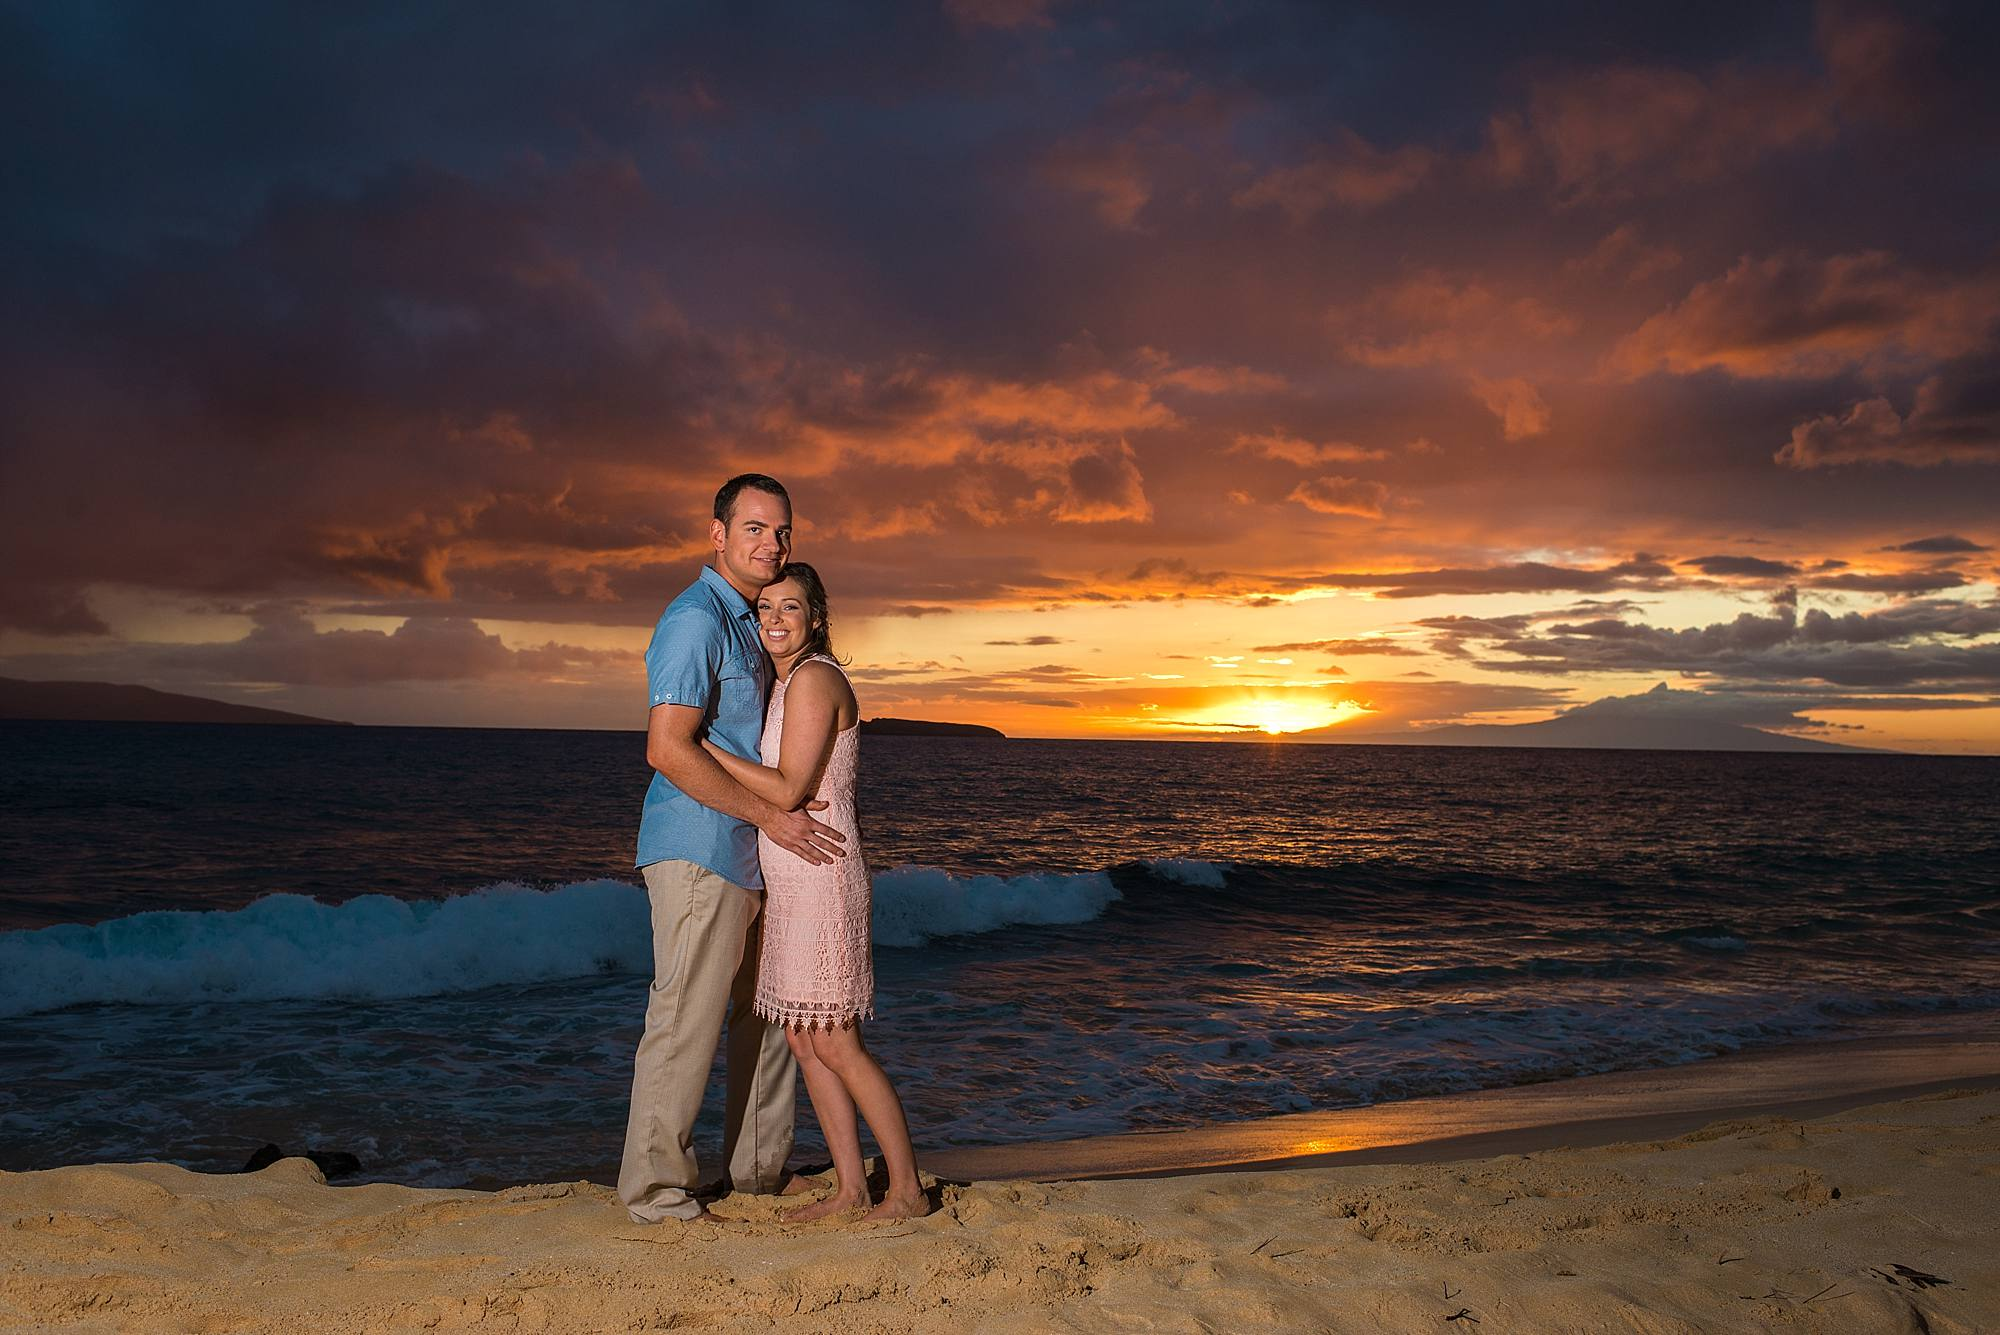 sunset photographer in maui, hawaii